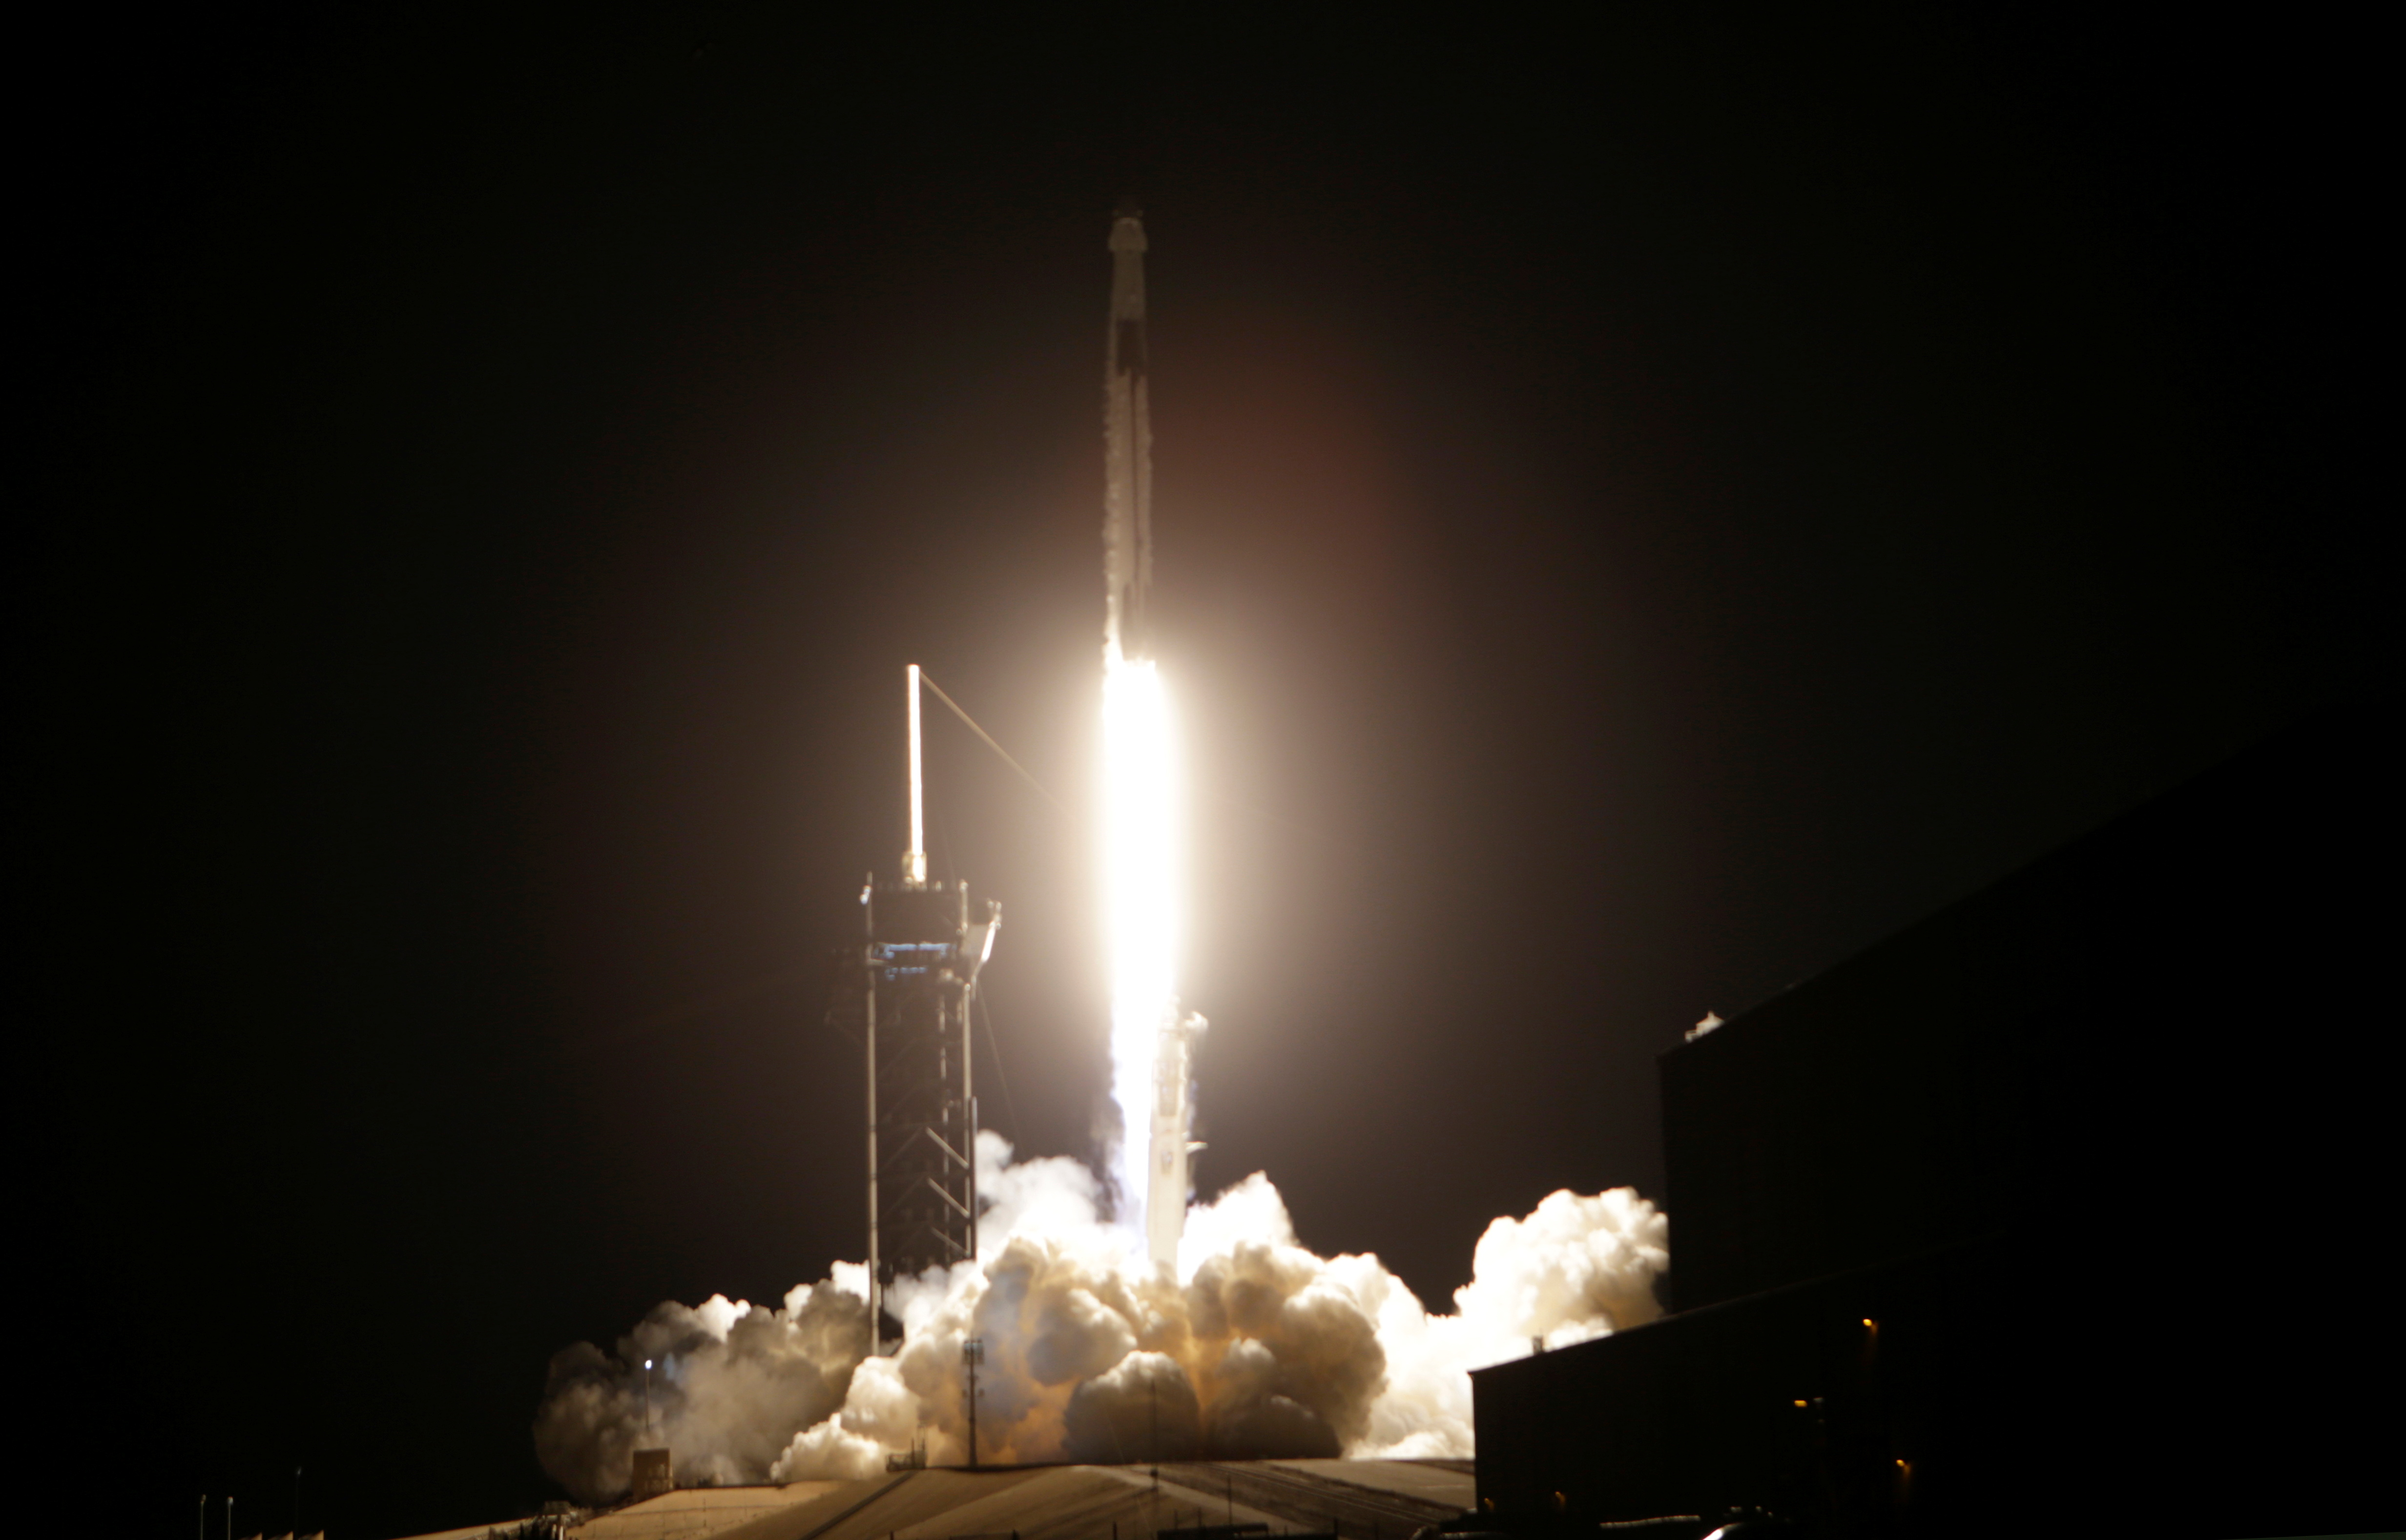 A SpaceX Falcon 9 rocket, topped with the Crew Dragon capsule, is launched carrying four astronauts on the first operational NASA commercial crew mission at Kennedy Space Center in Cape Canaveral, Florida, U.S. November 15, 2020. REUTERS/Joe Skipper